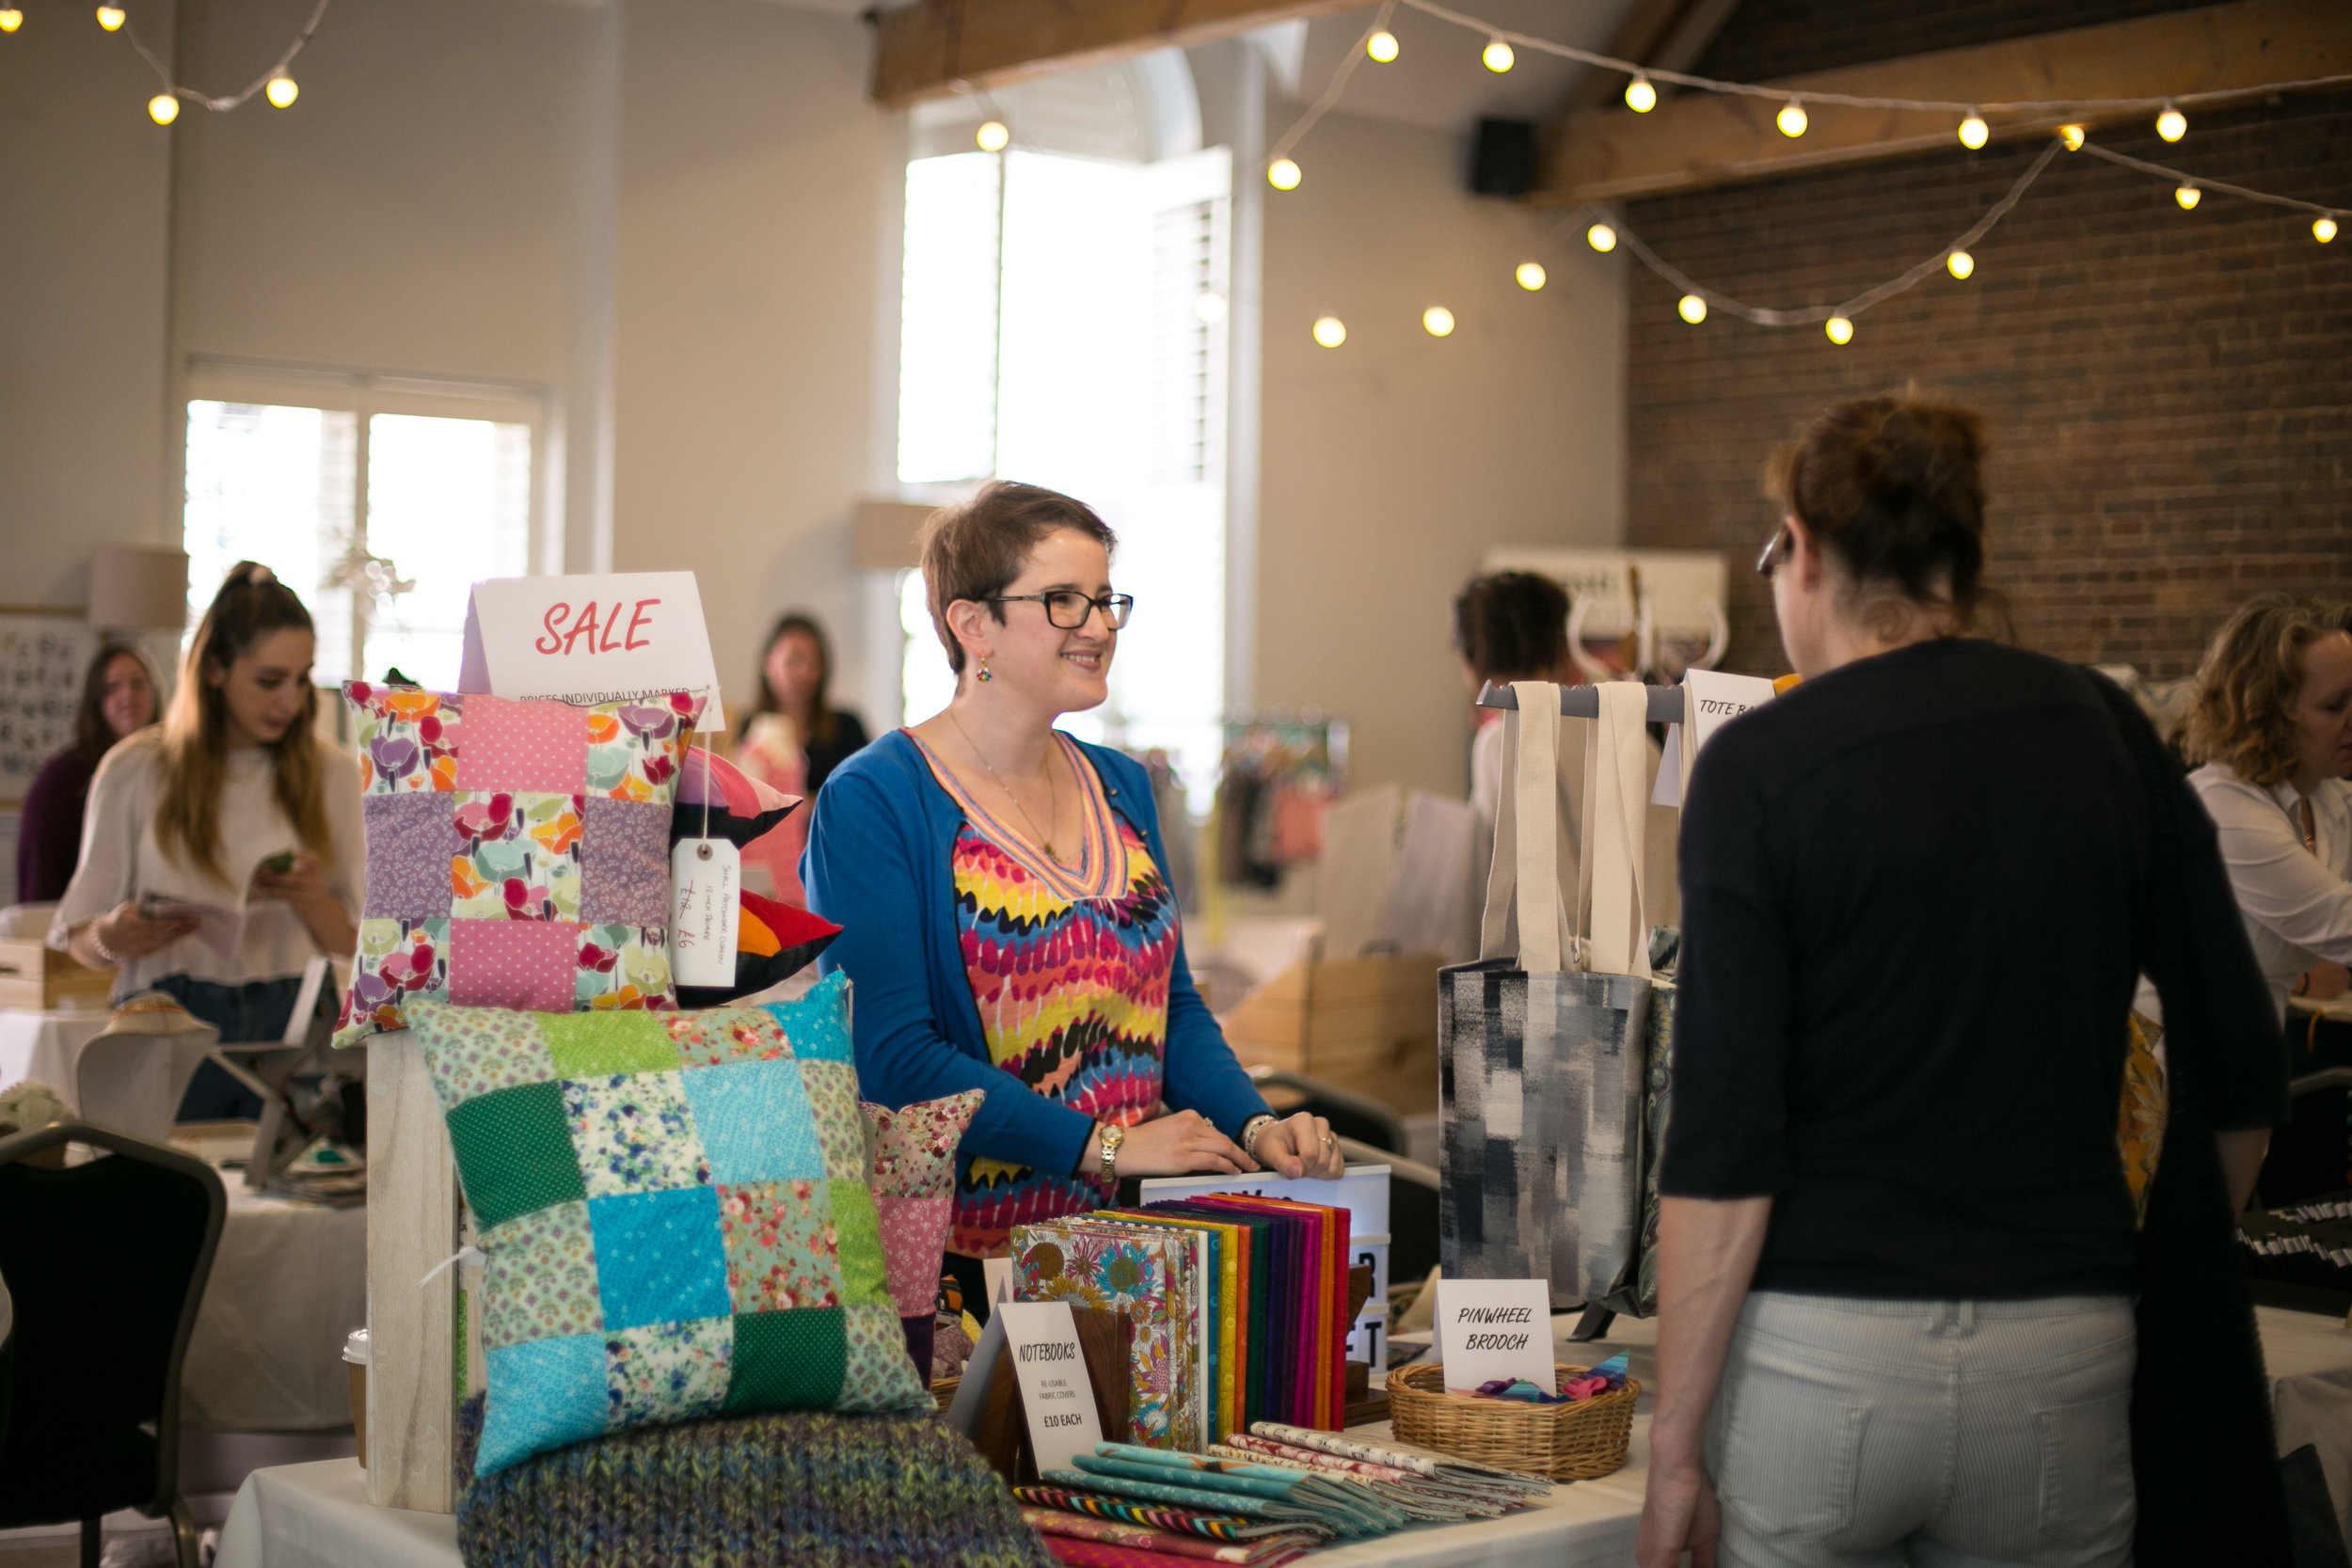 Support-local-pop-up-market-tunbridgewells-kent-craft.jpg4191.jpg